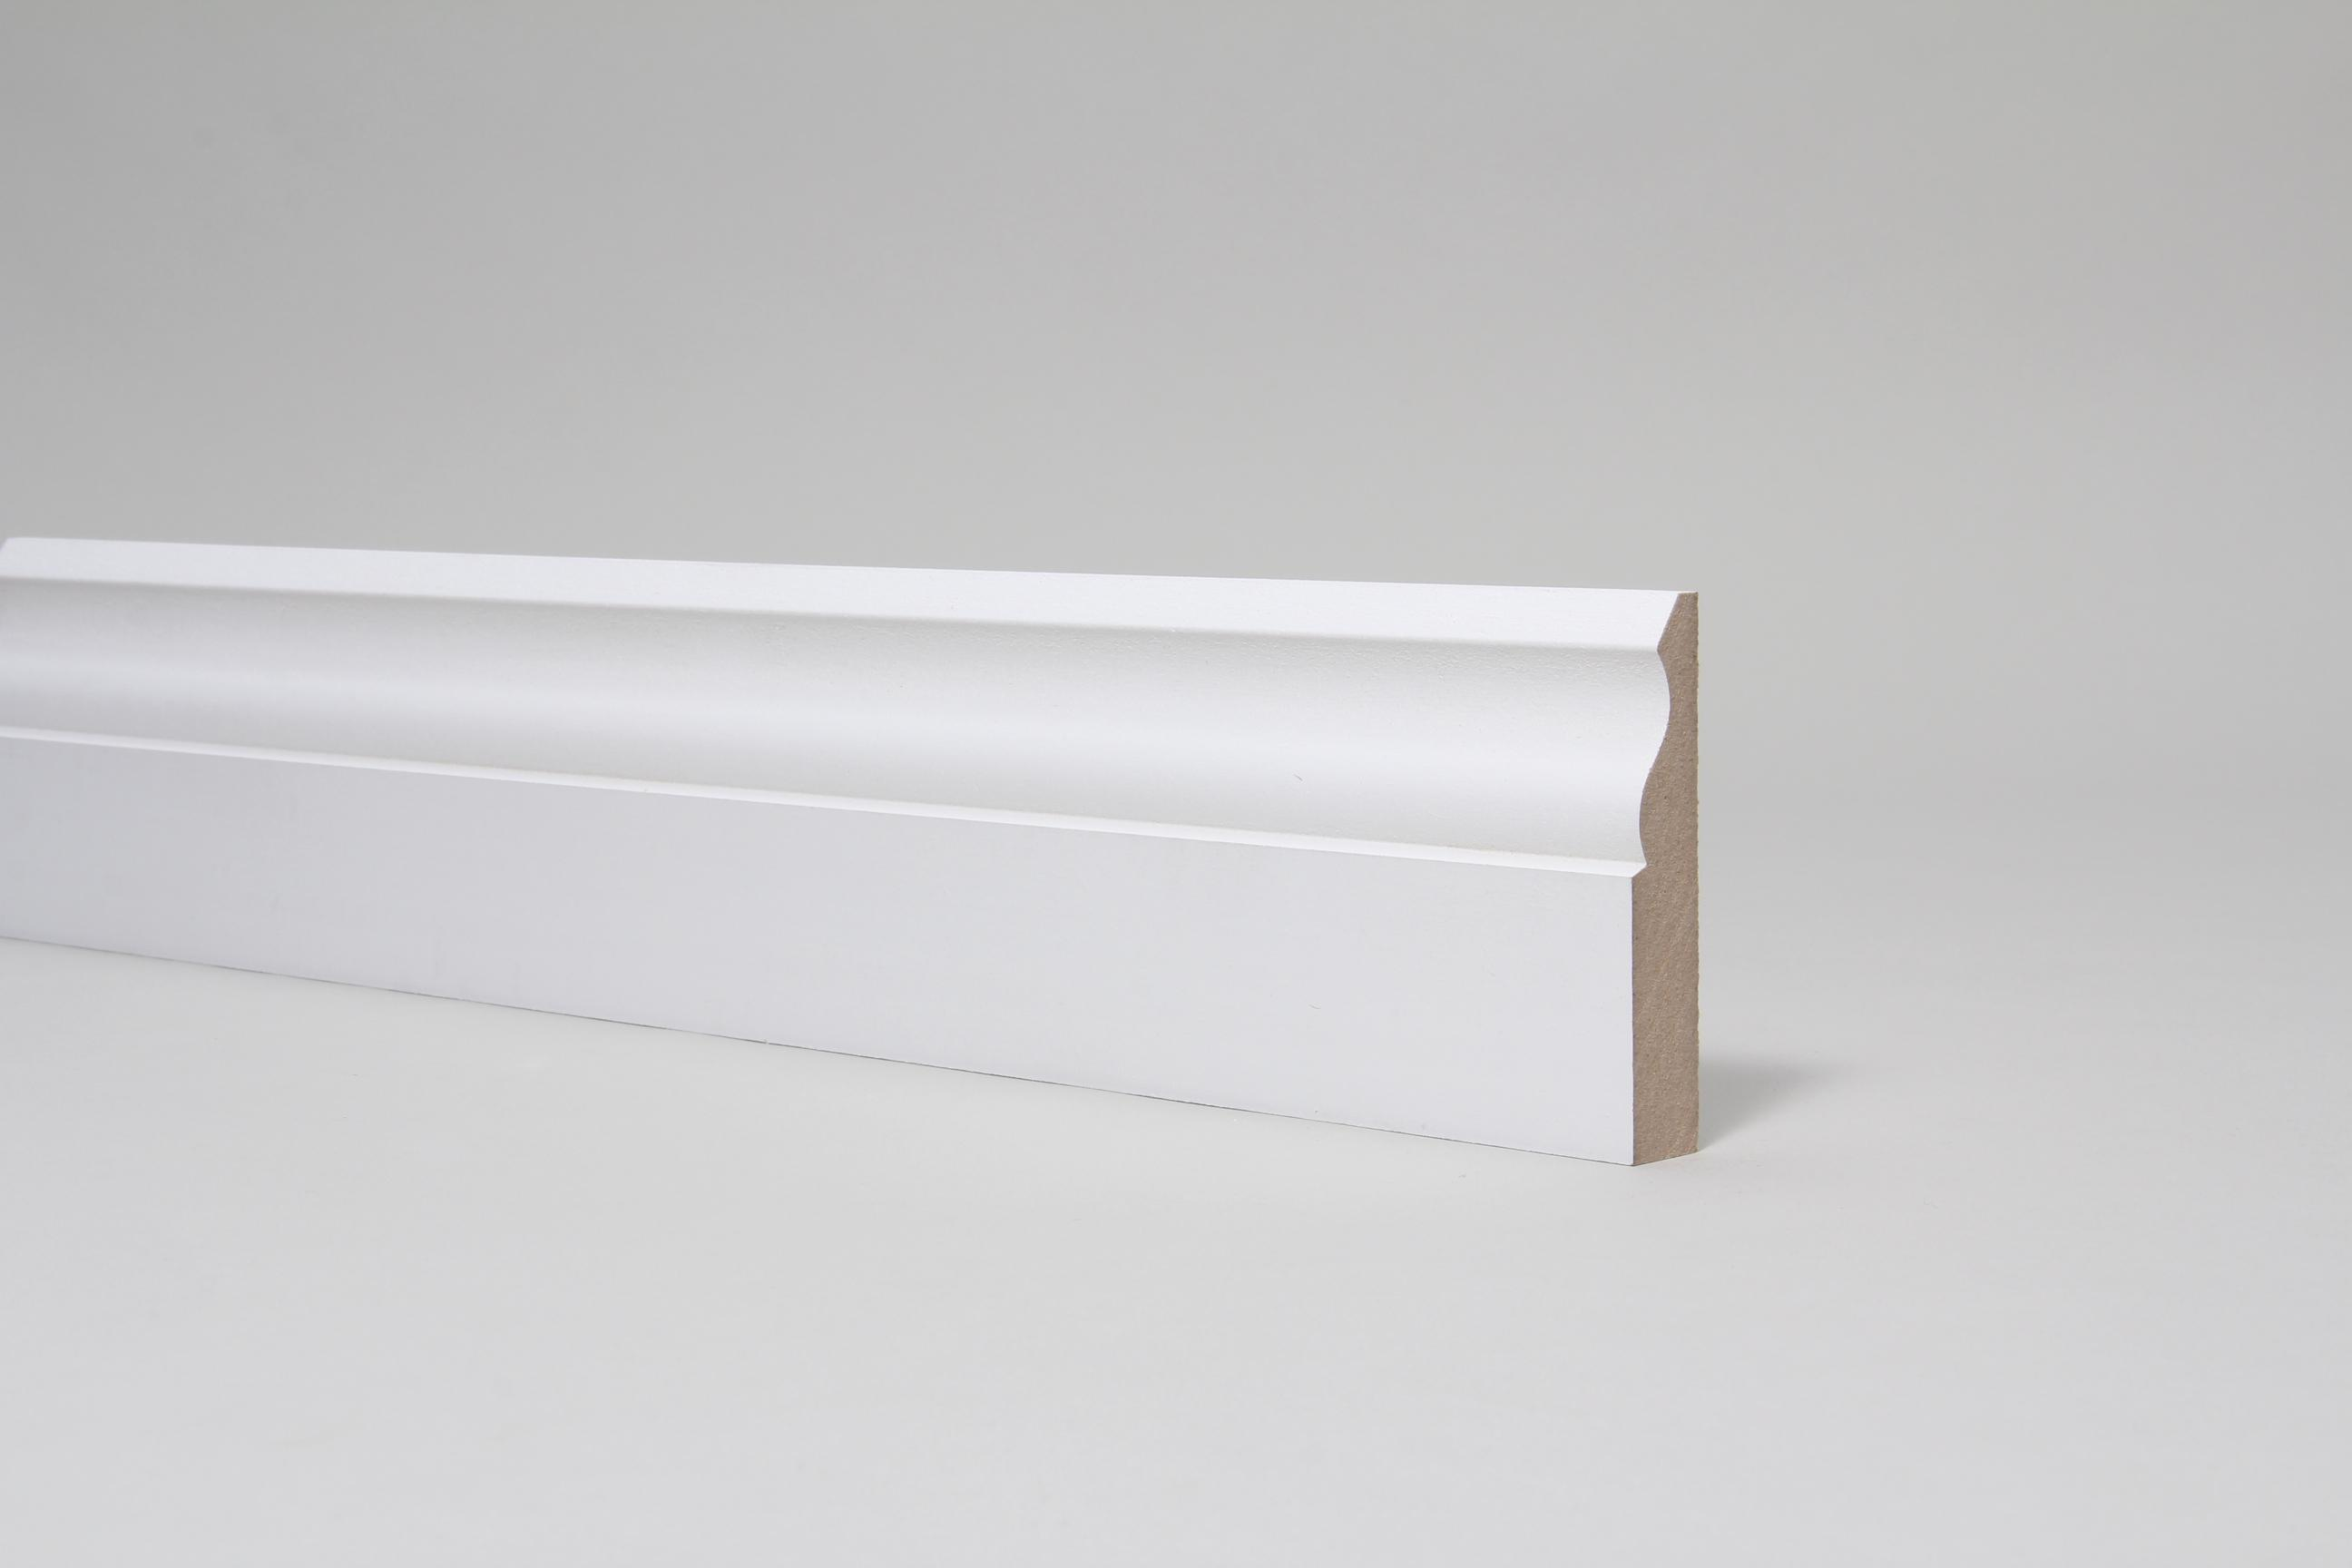 Ogee 18mm x 94mm x 4.4 Mtr Primed